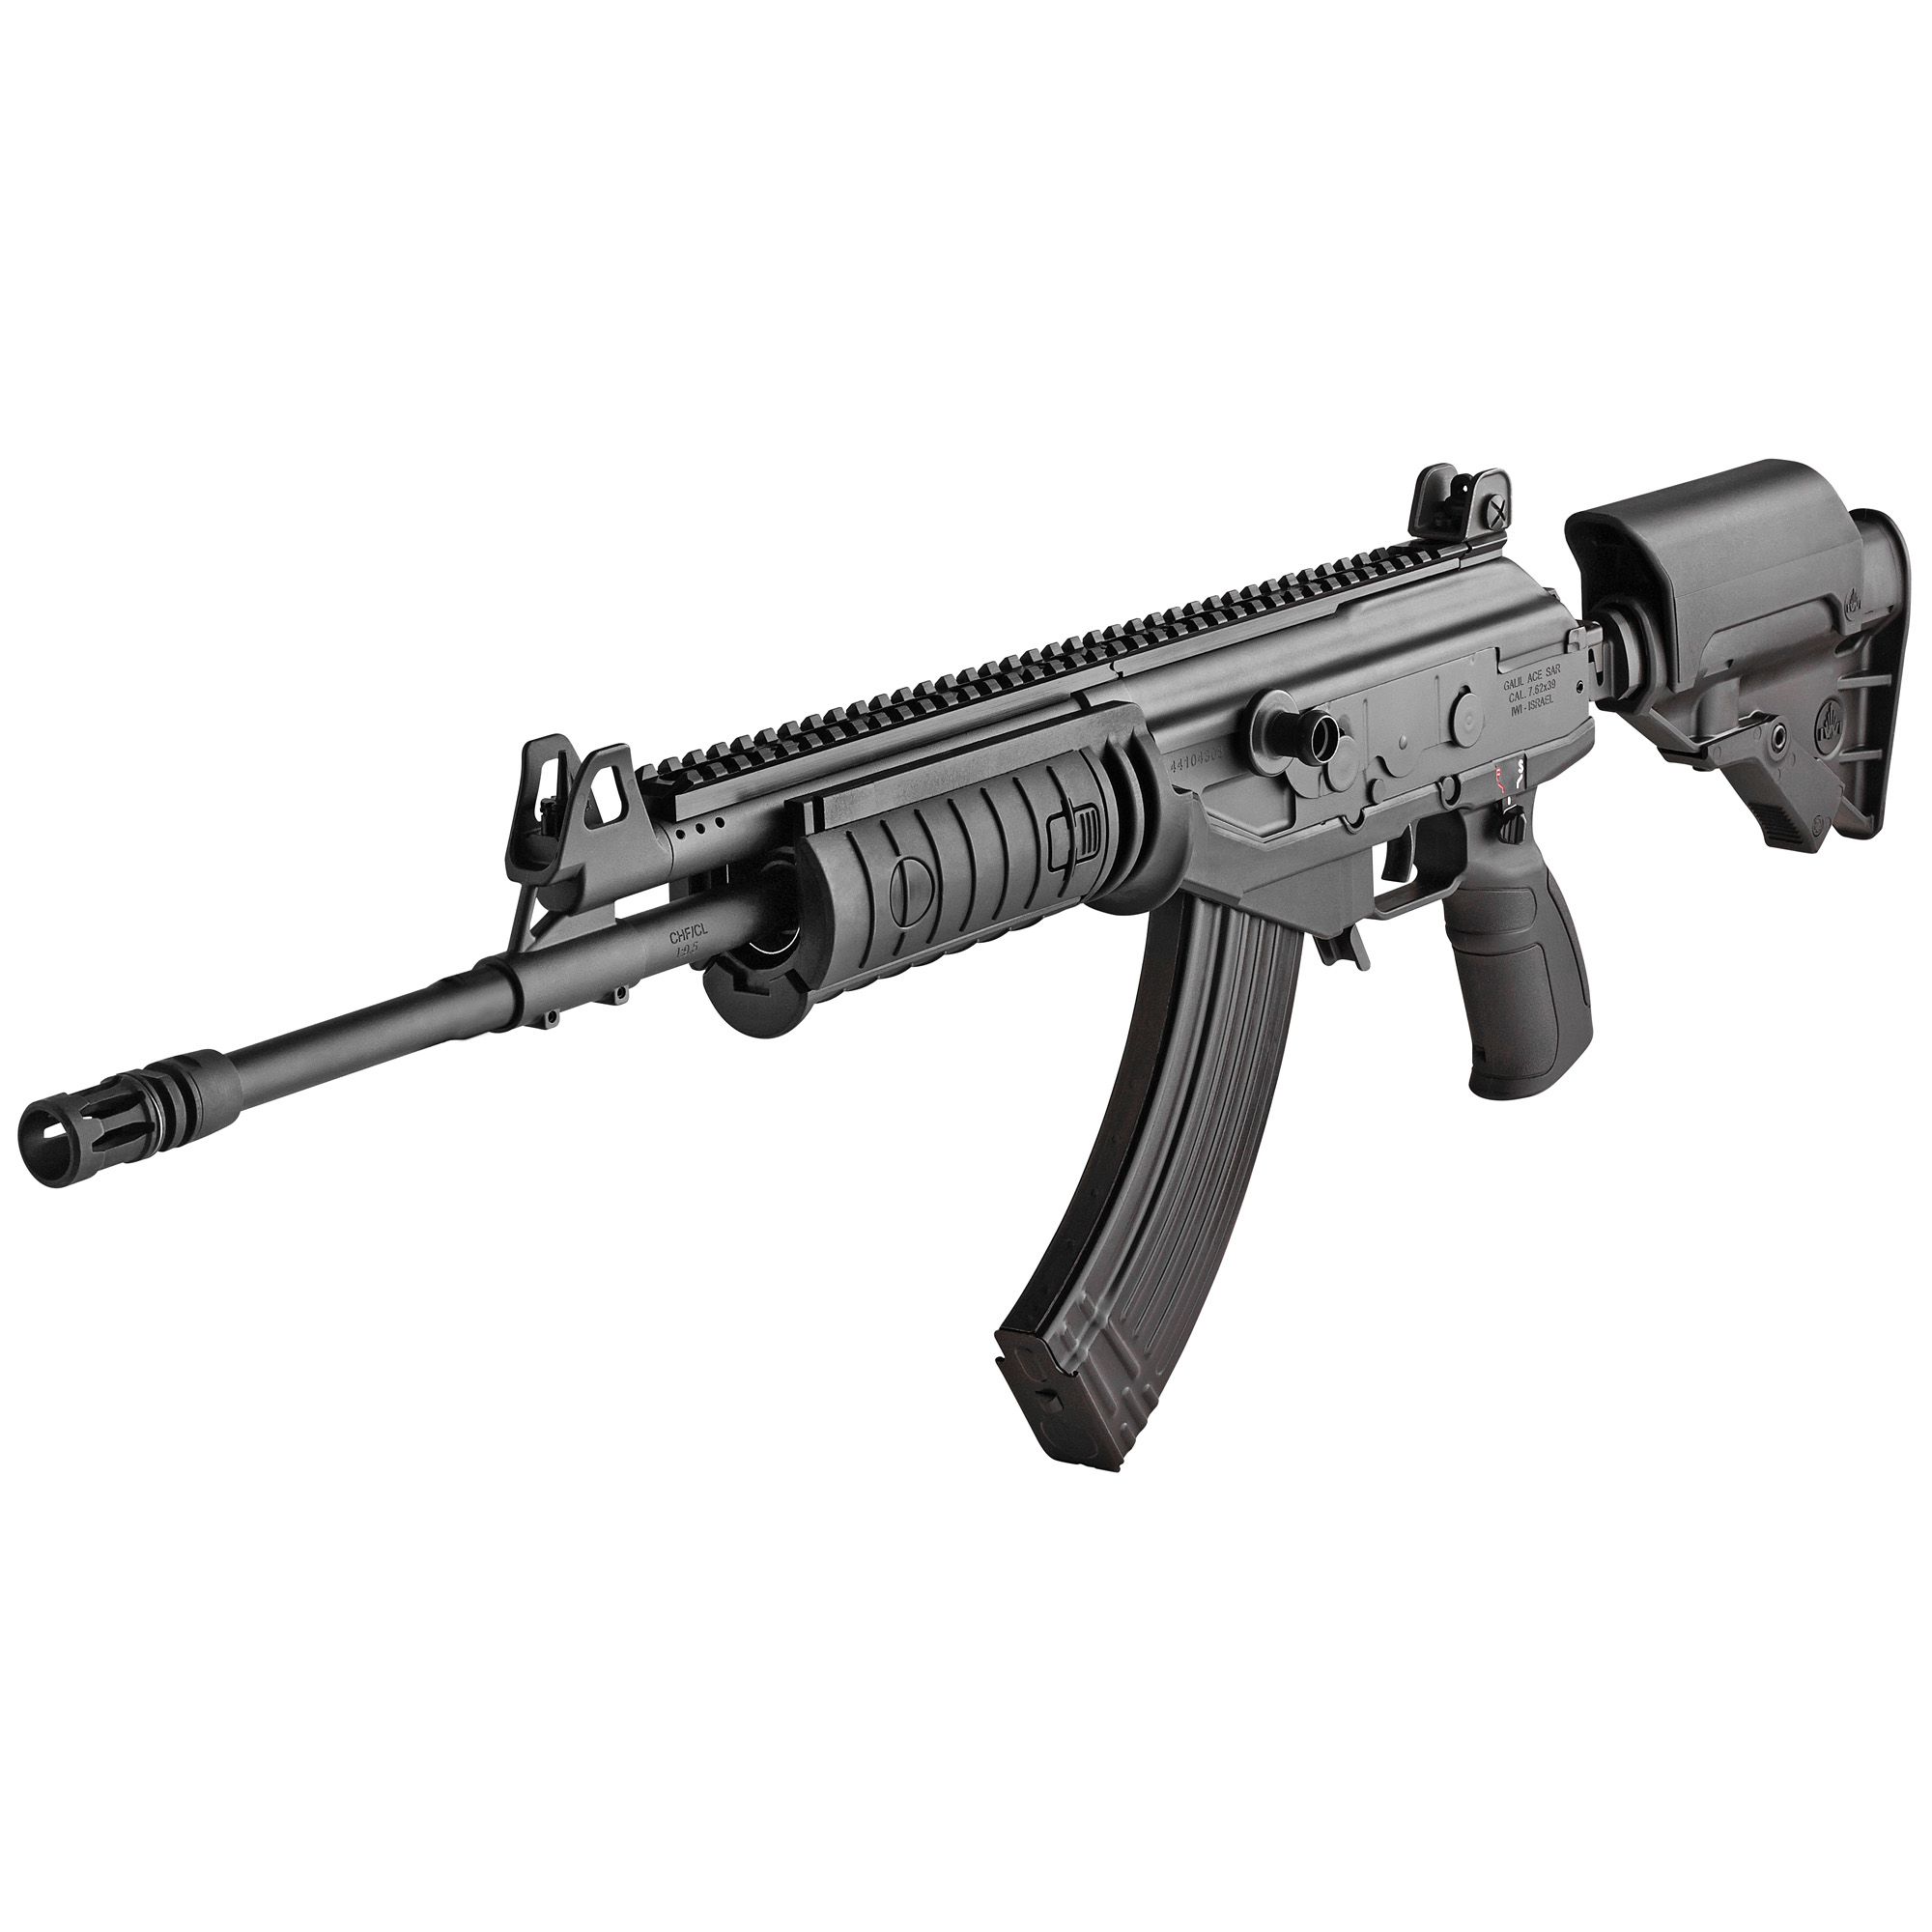 """The modernized Galil ACE is based upon the reliable mechanism of the original Galil rifle first developed by IMI in the late 1960's. Drawing inspiration from the legendary Russian AK-47 and the Finnish Valmet RK 62"""" the IWI Galil ACE has been continuously improved over the last 40 years"""" resulting in today's extremely reliable and highly accurate Galil ACE."""